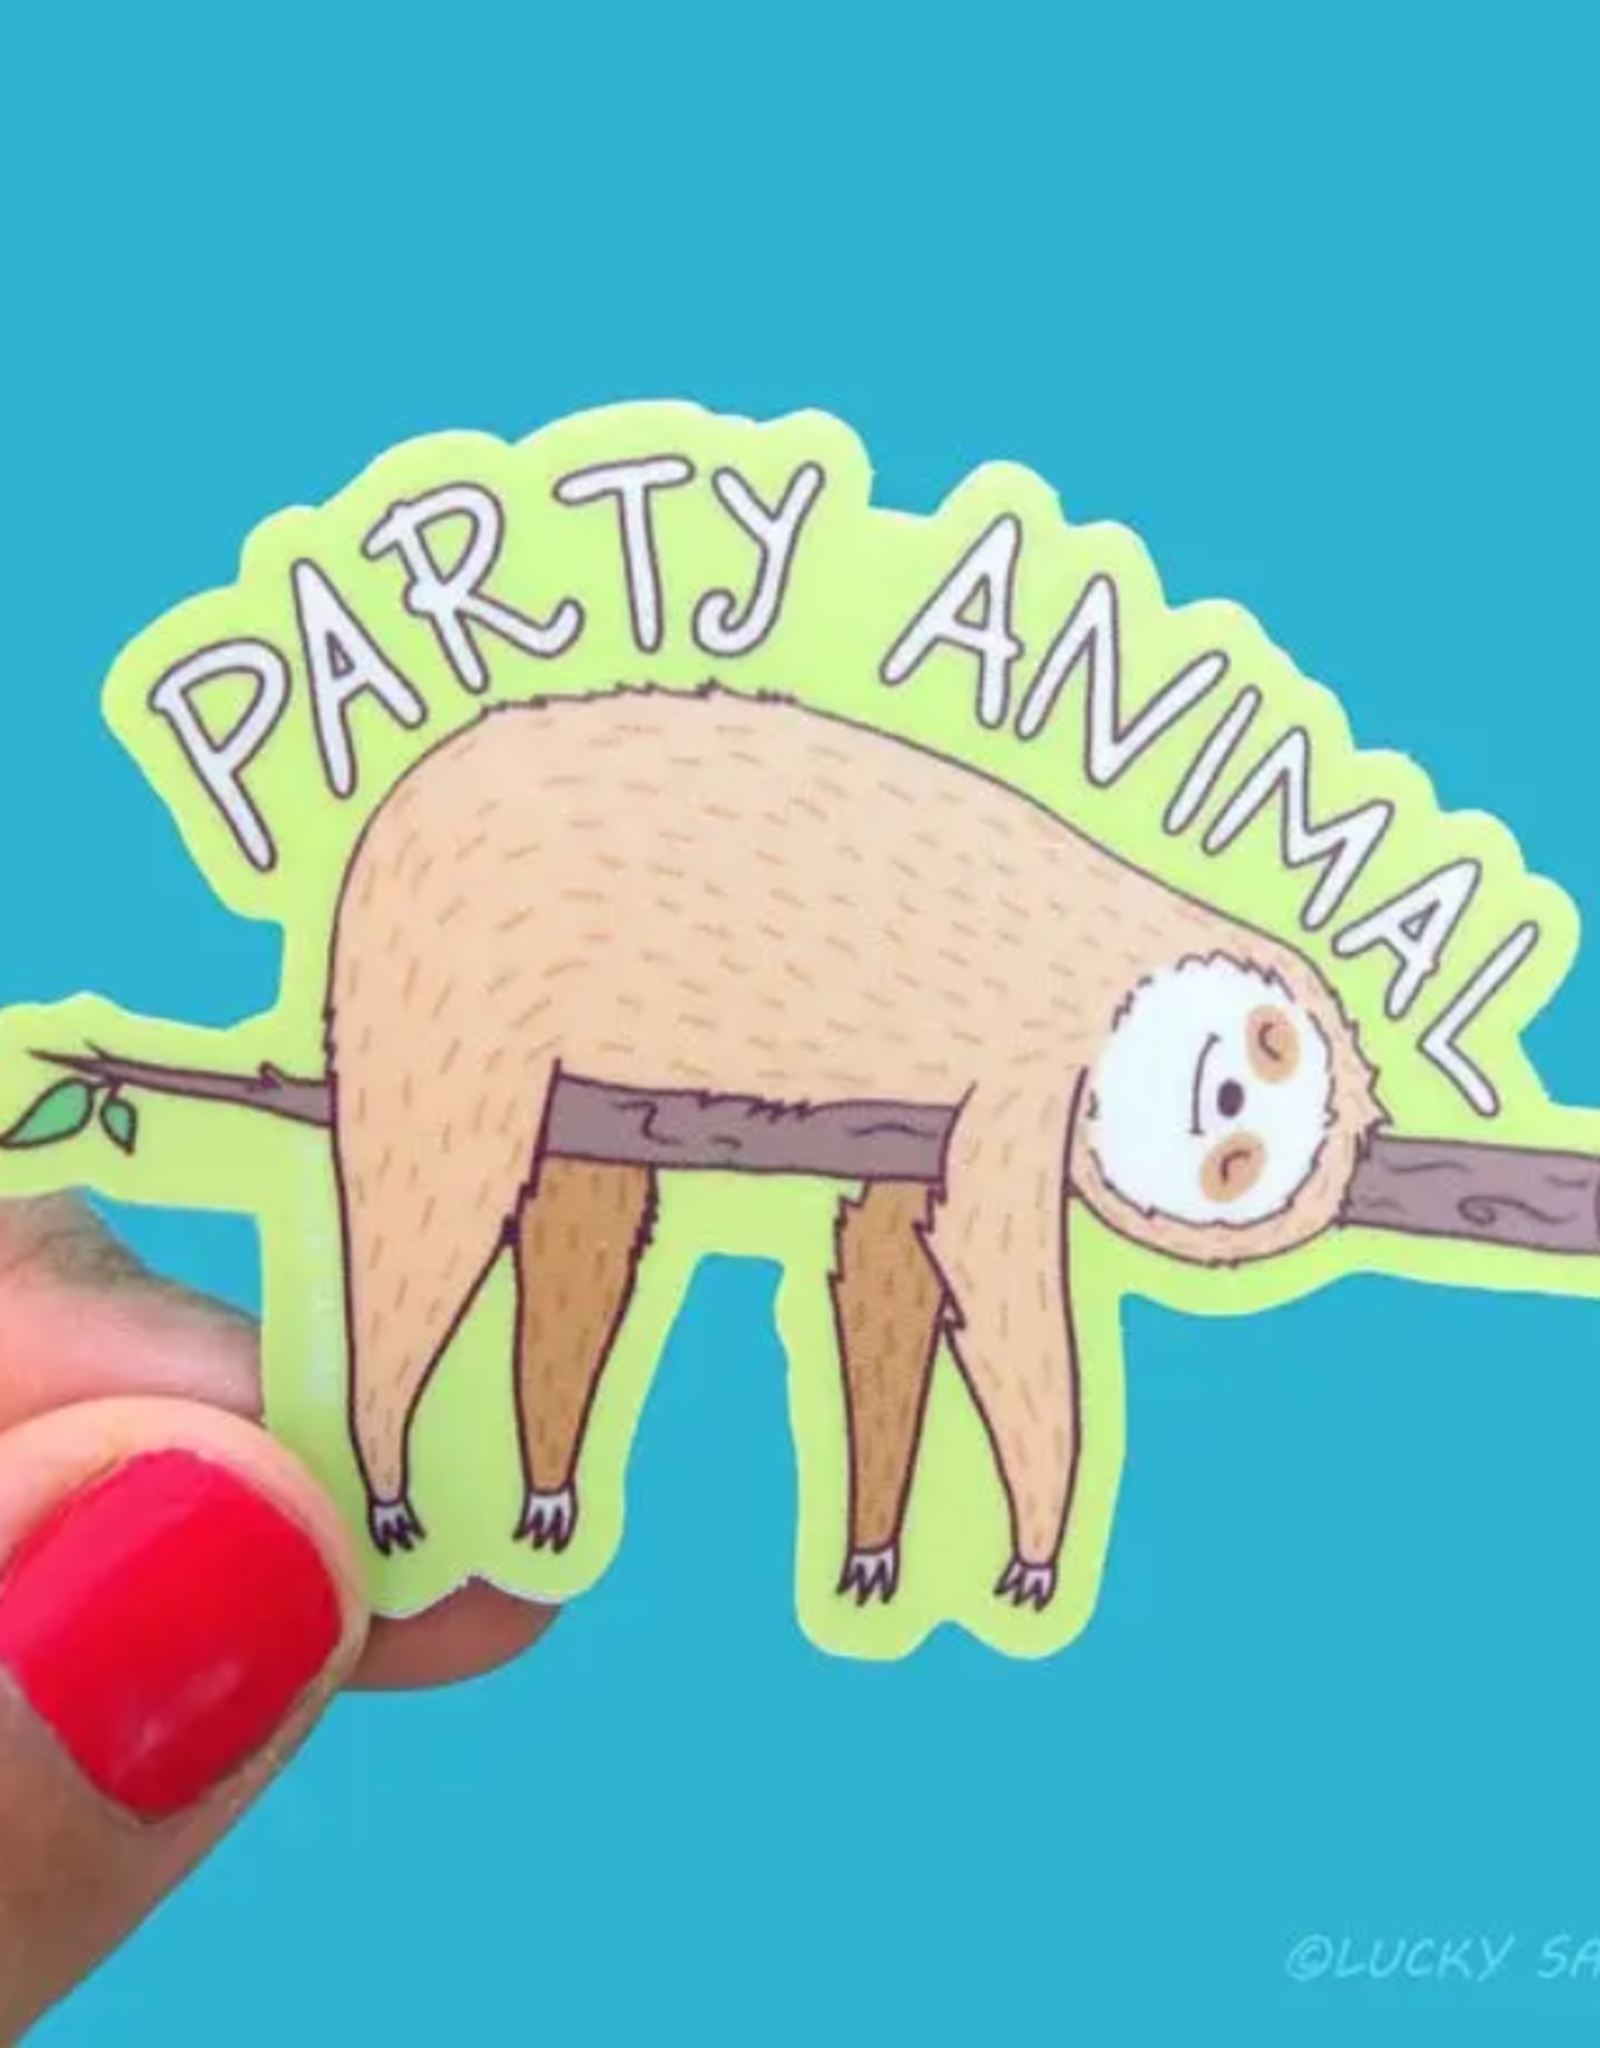 Lucky Sardine Party Sloth waterproof vinyl sticker